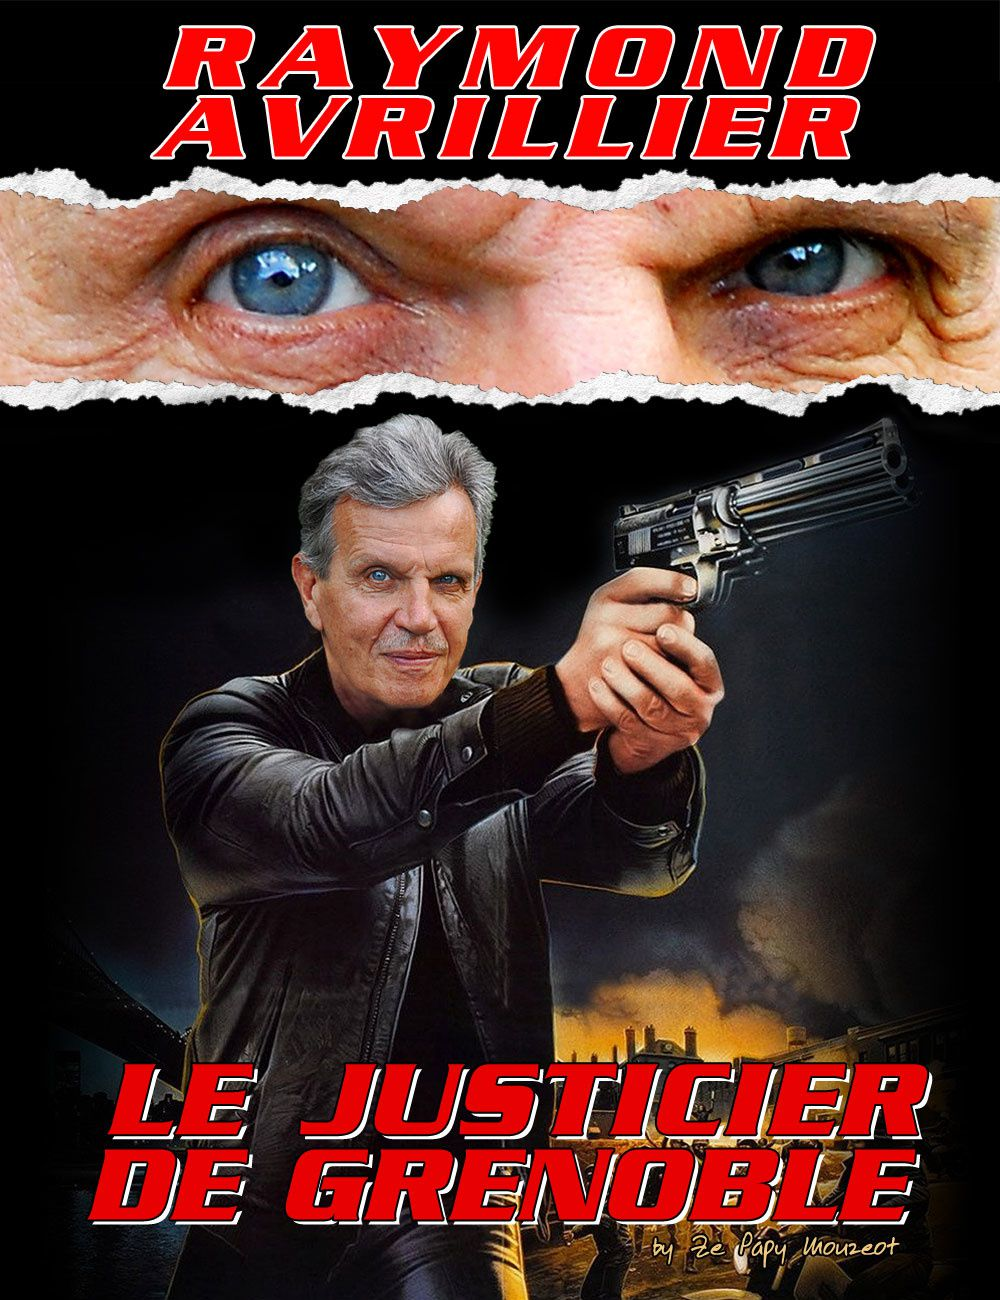 http://a6.idata.over-blog.com/4/16/26/23/Papyrodies-2012/Avrillier_Le_Justicier.jpg